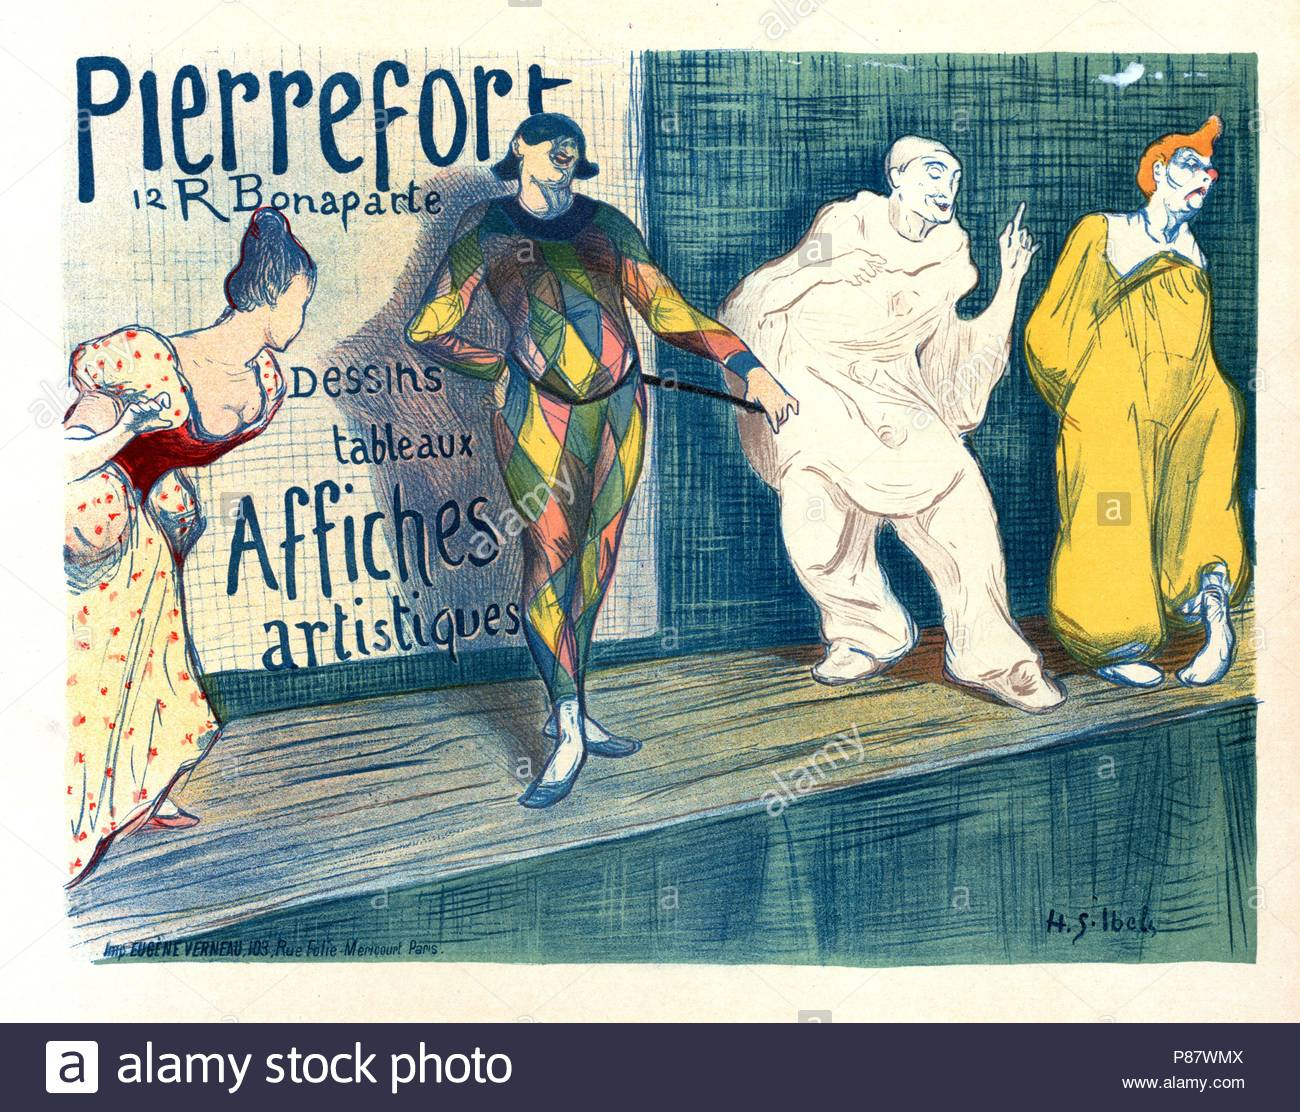 Poster for Posters artistiques Pierrefort. Ibels, Henry Gabriel 1867-1936, French illustrator, printmaker, painter and author.He studied at the Académie Julian with Pierre Bonnard and Édouard Vuillard and was a member of Les. - Stock Image